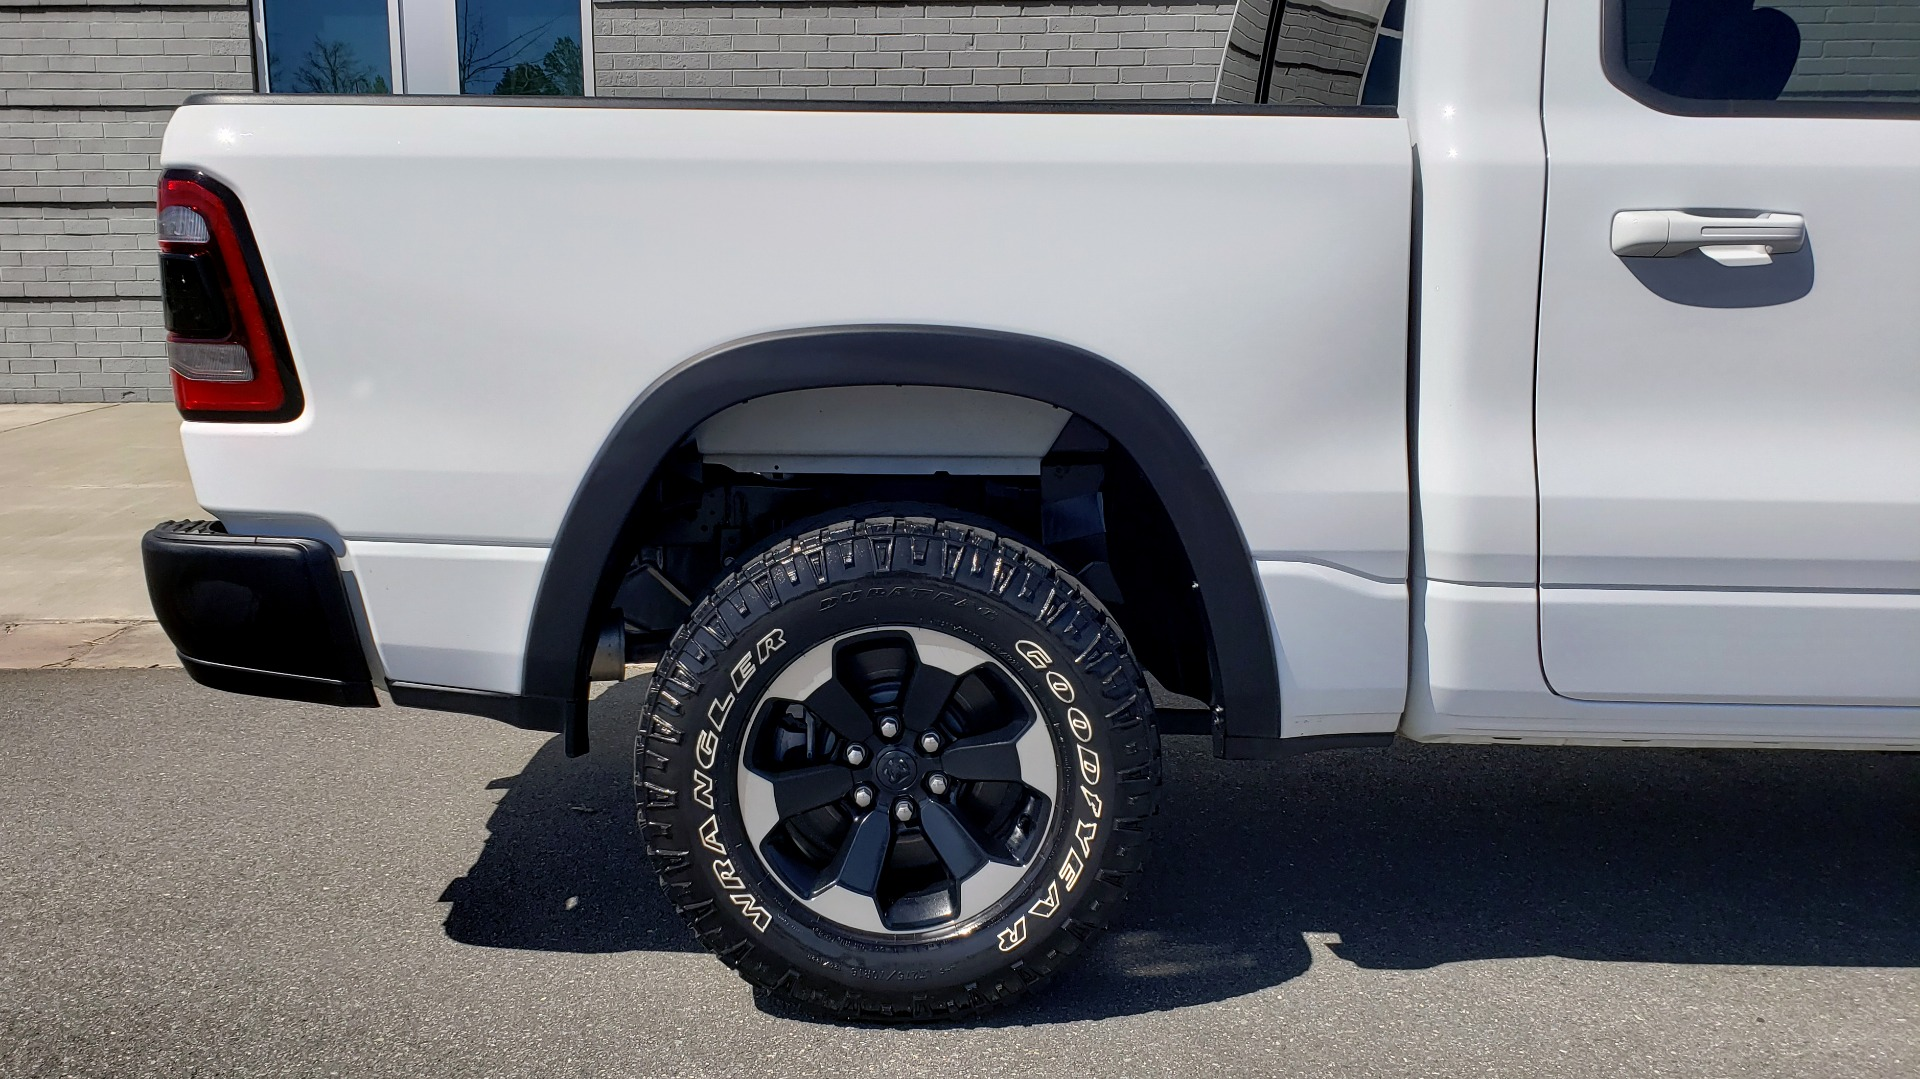 Used 2019 Ram 1500 REBEL CREWCAB 4X4 / 5.7L V8 HEMI / 8-SPD AUTO / REARVIEW for sale Sold at Formula Imports in Charlotte NC 28227 87